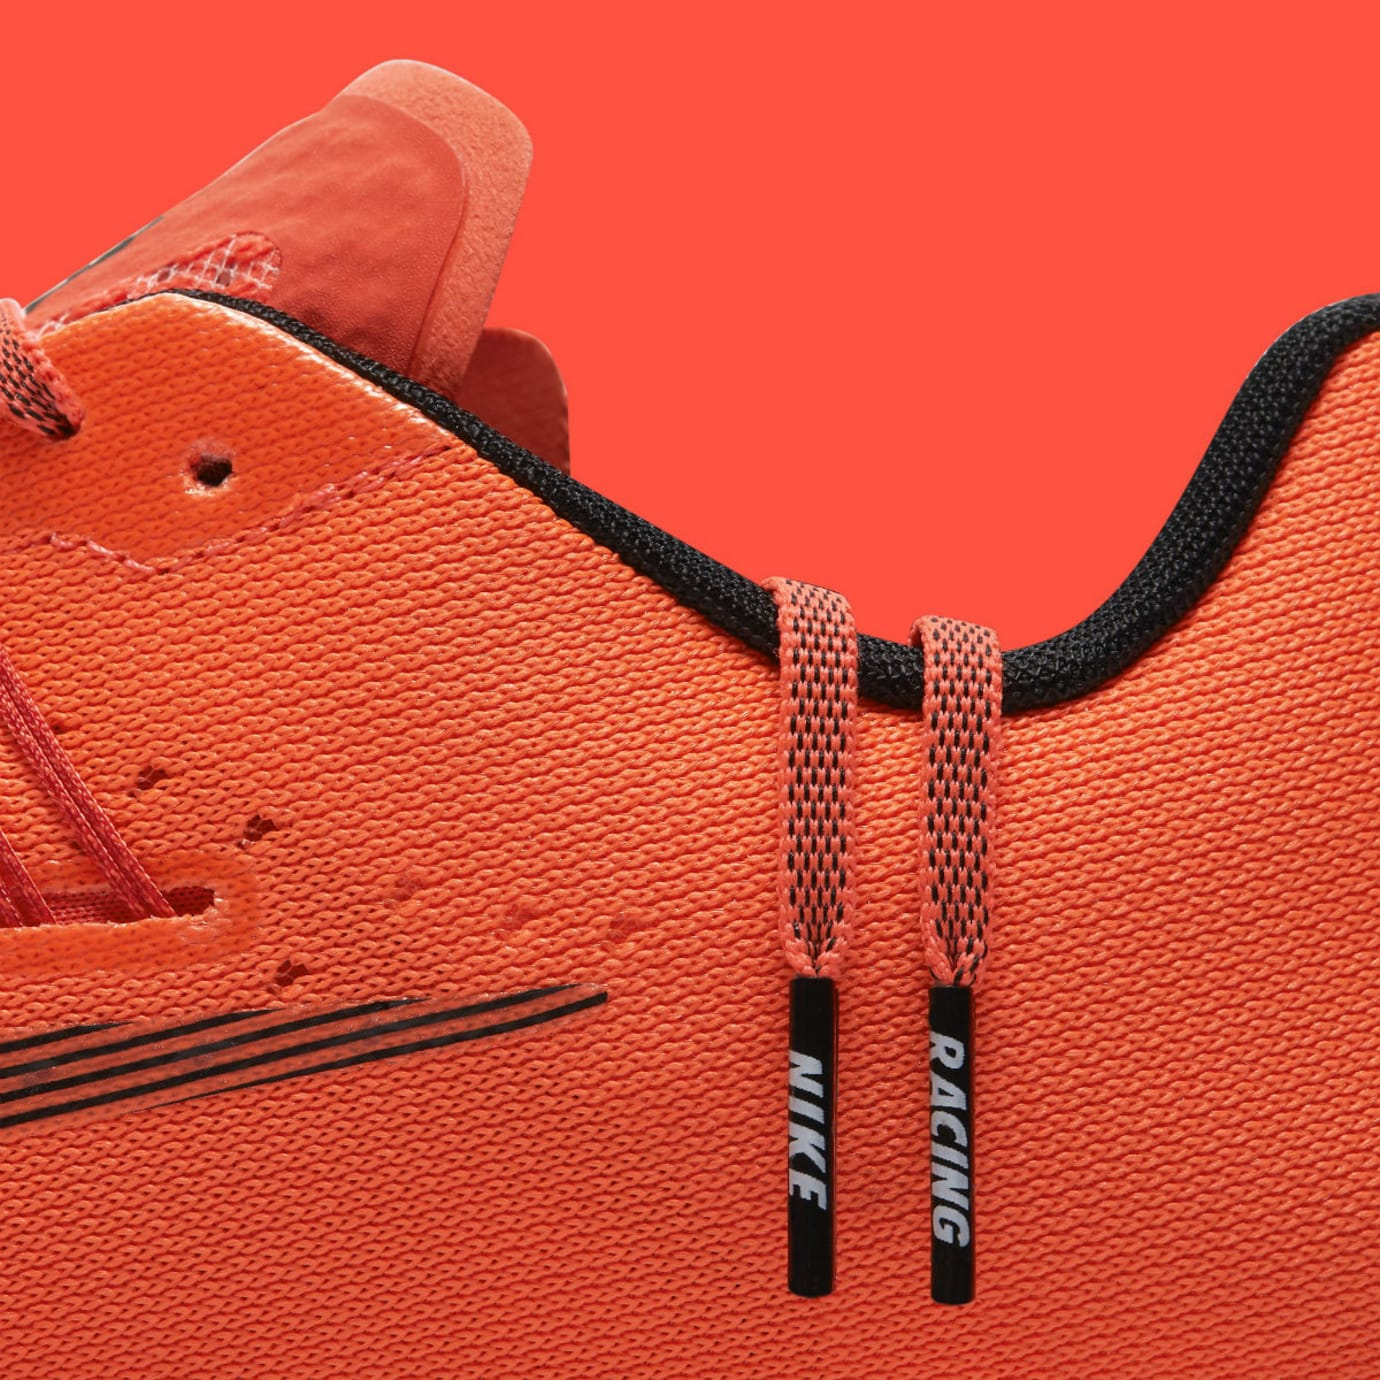 Nike Zoom Fly Bright Crimson Release Date Laces 880848-614